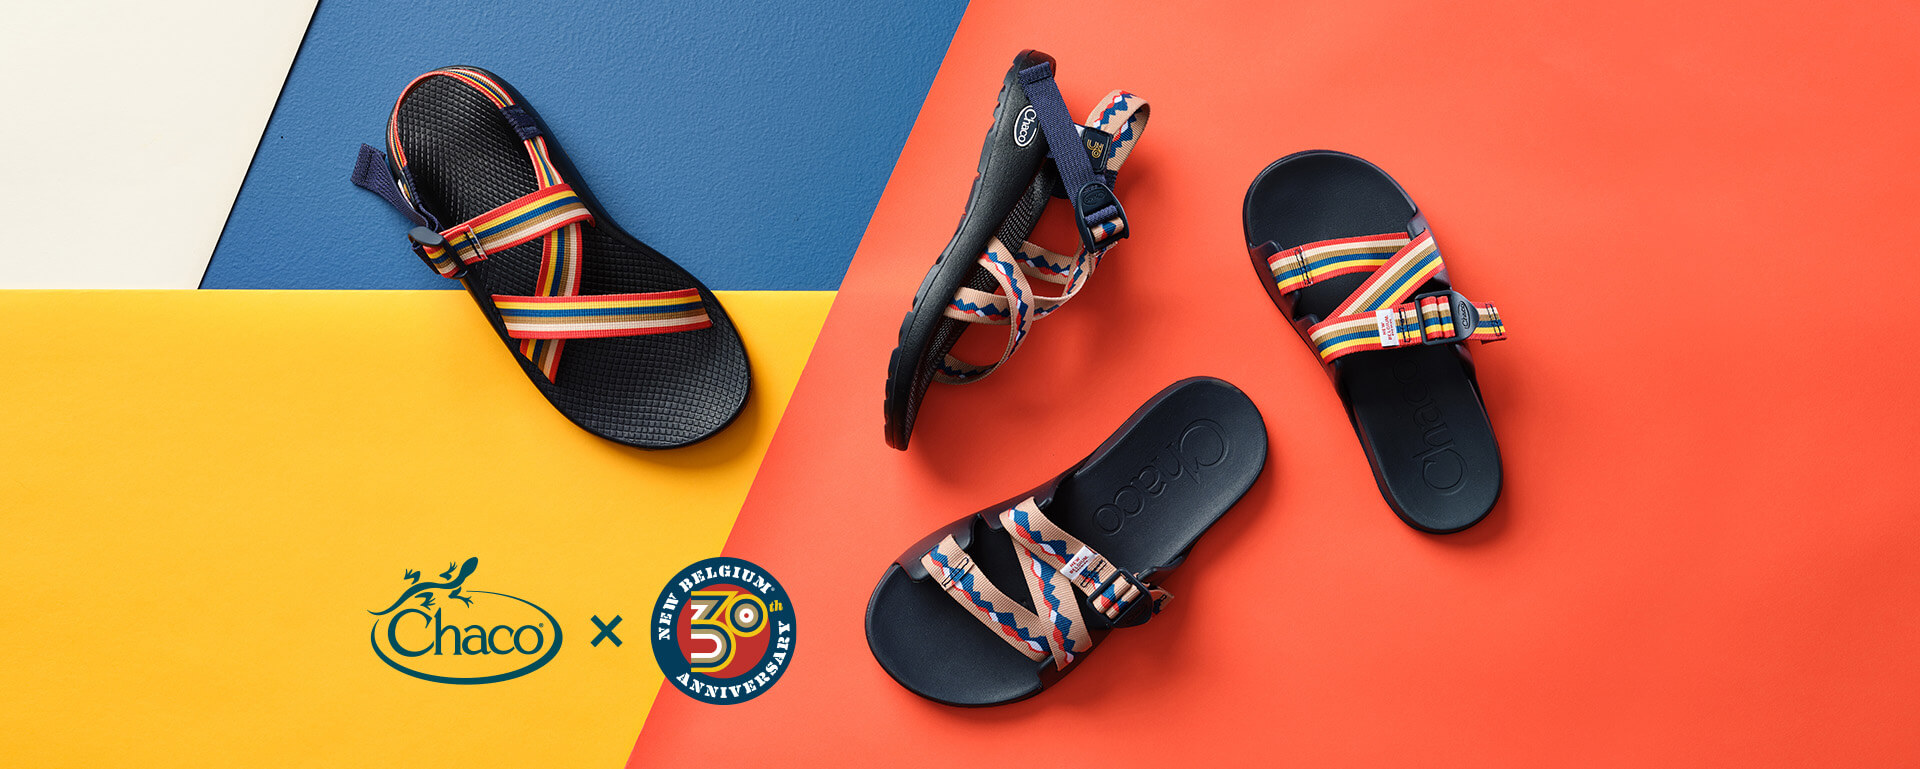 In Celebration of 30 Years New Belgium Brewing Collabs with Chaco Footwear